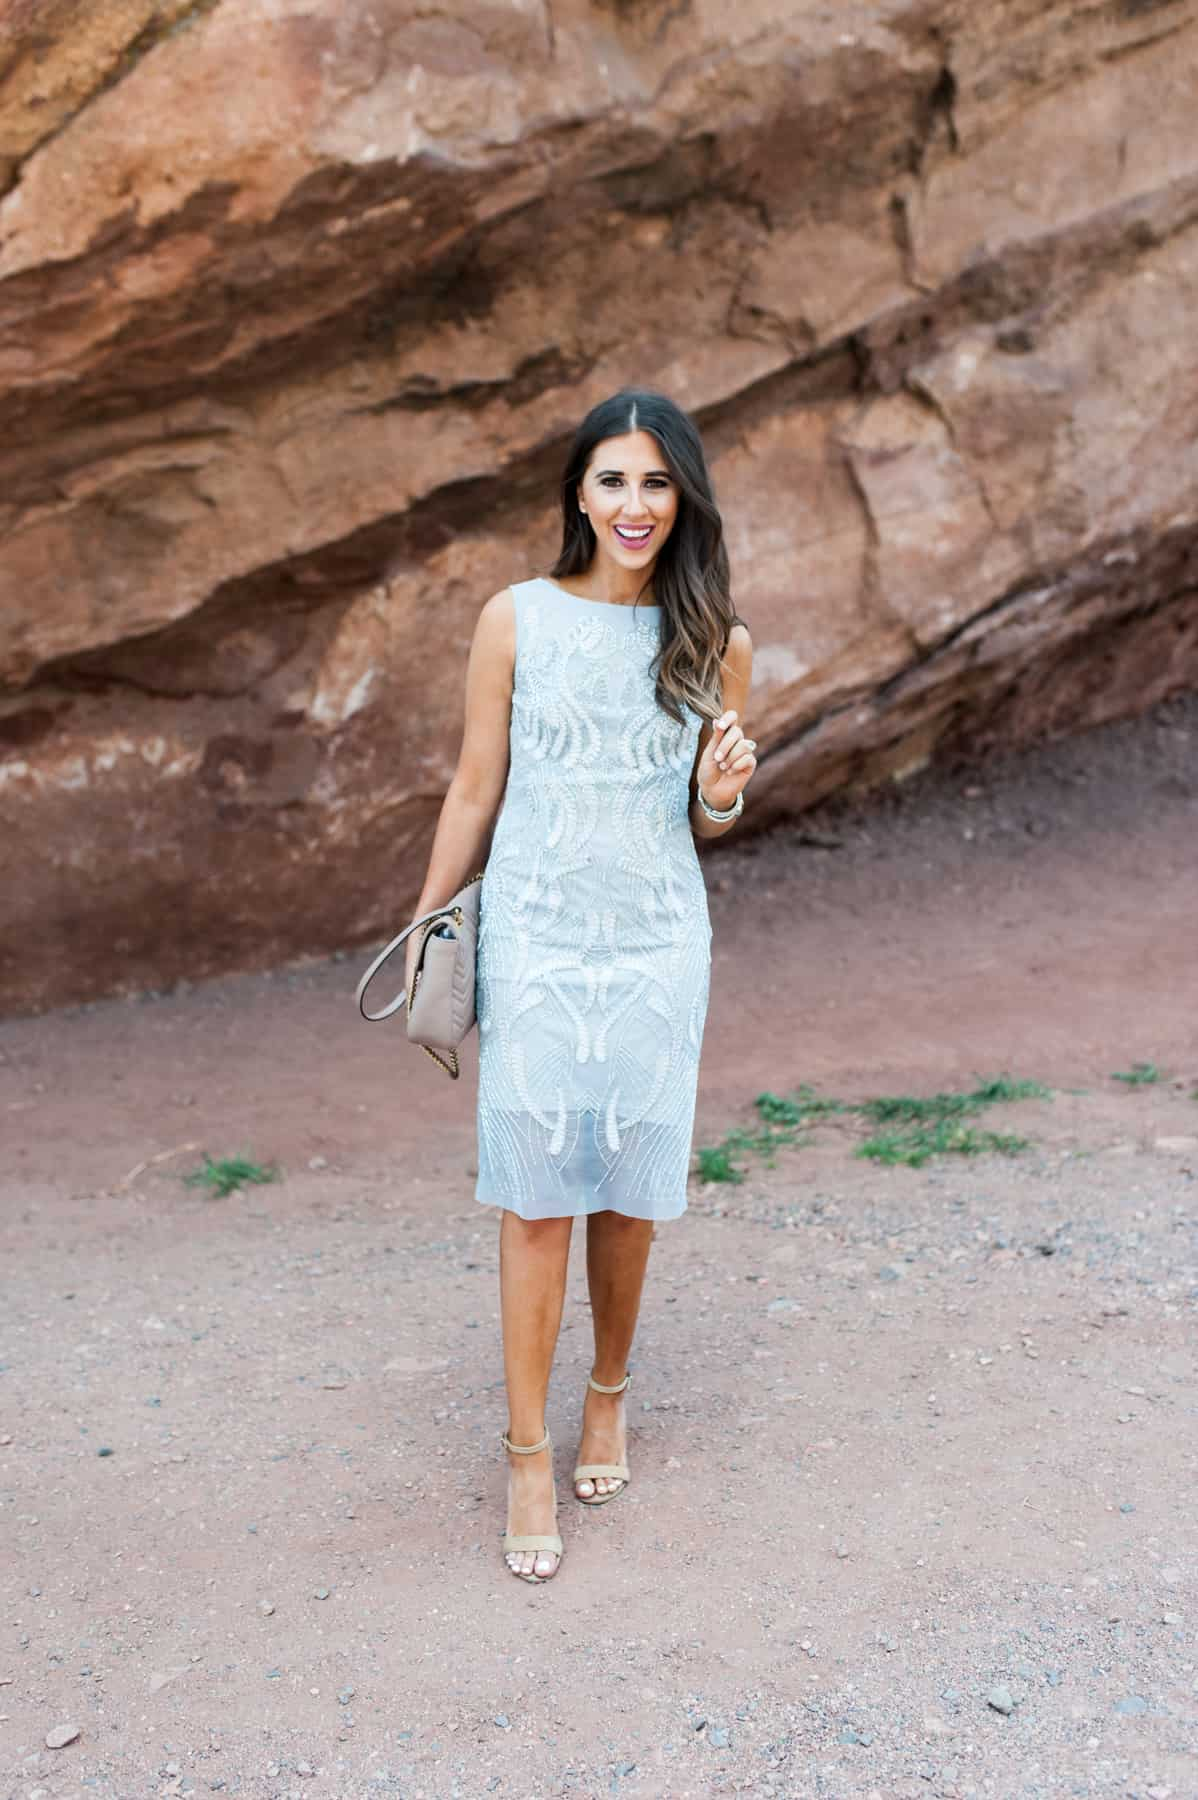 Wedding Guest in Red Rocks, adrianna-papell, sequins dress